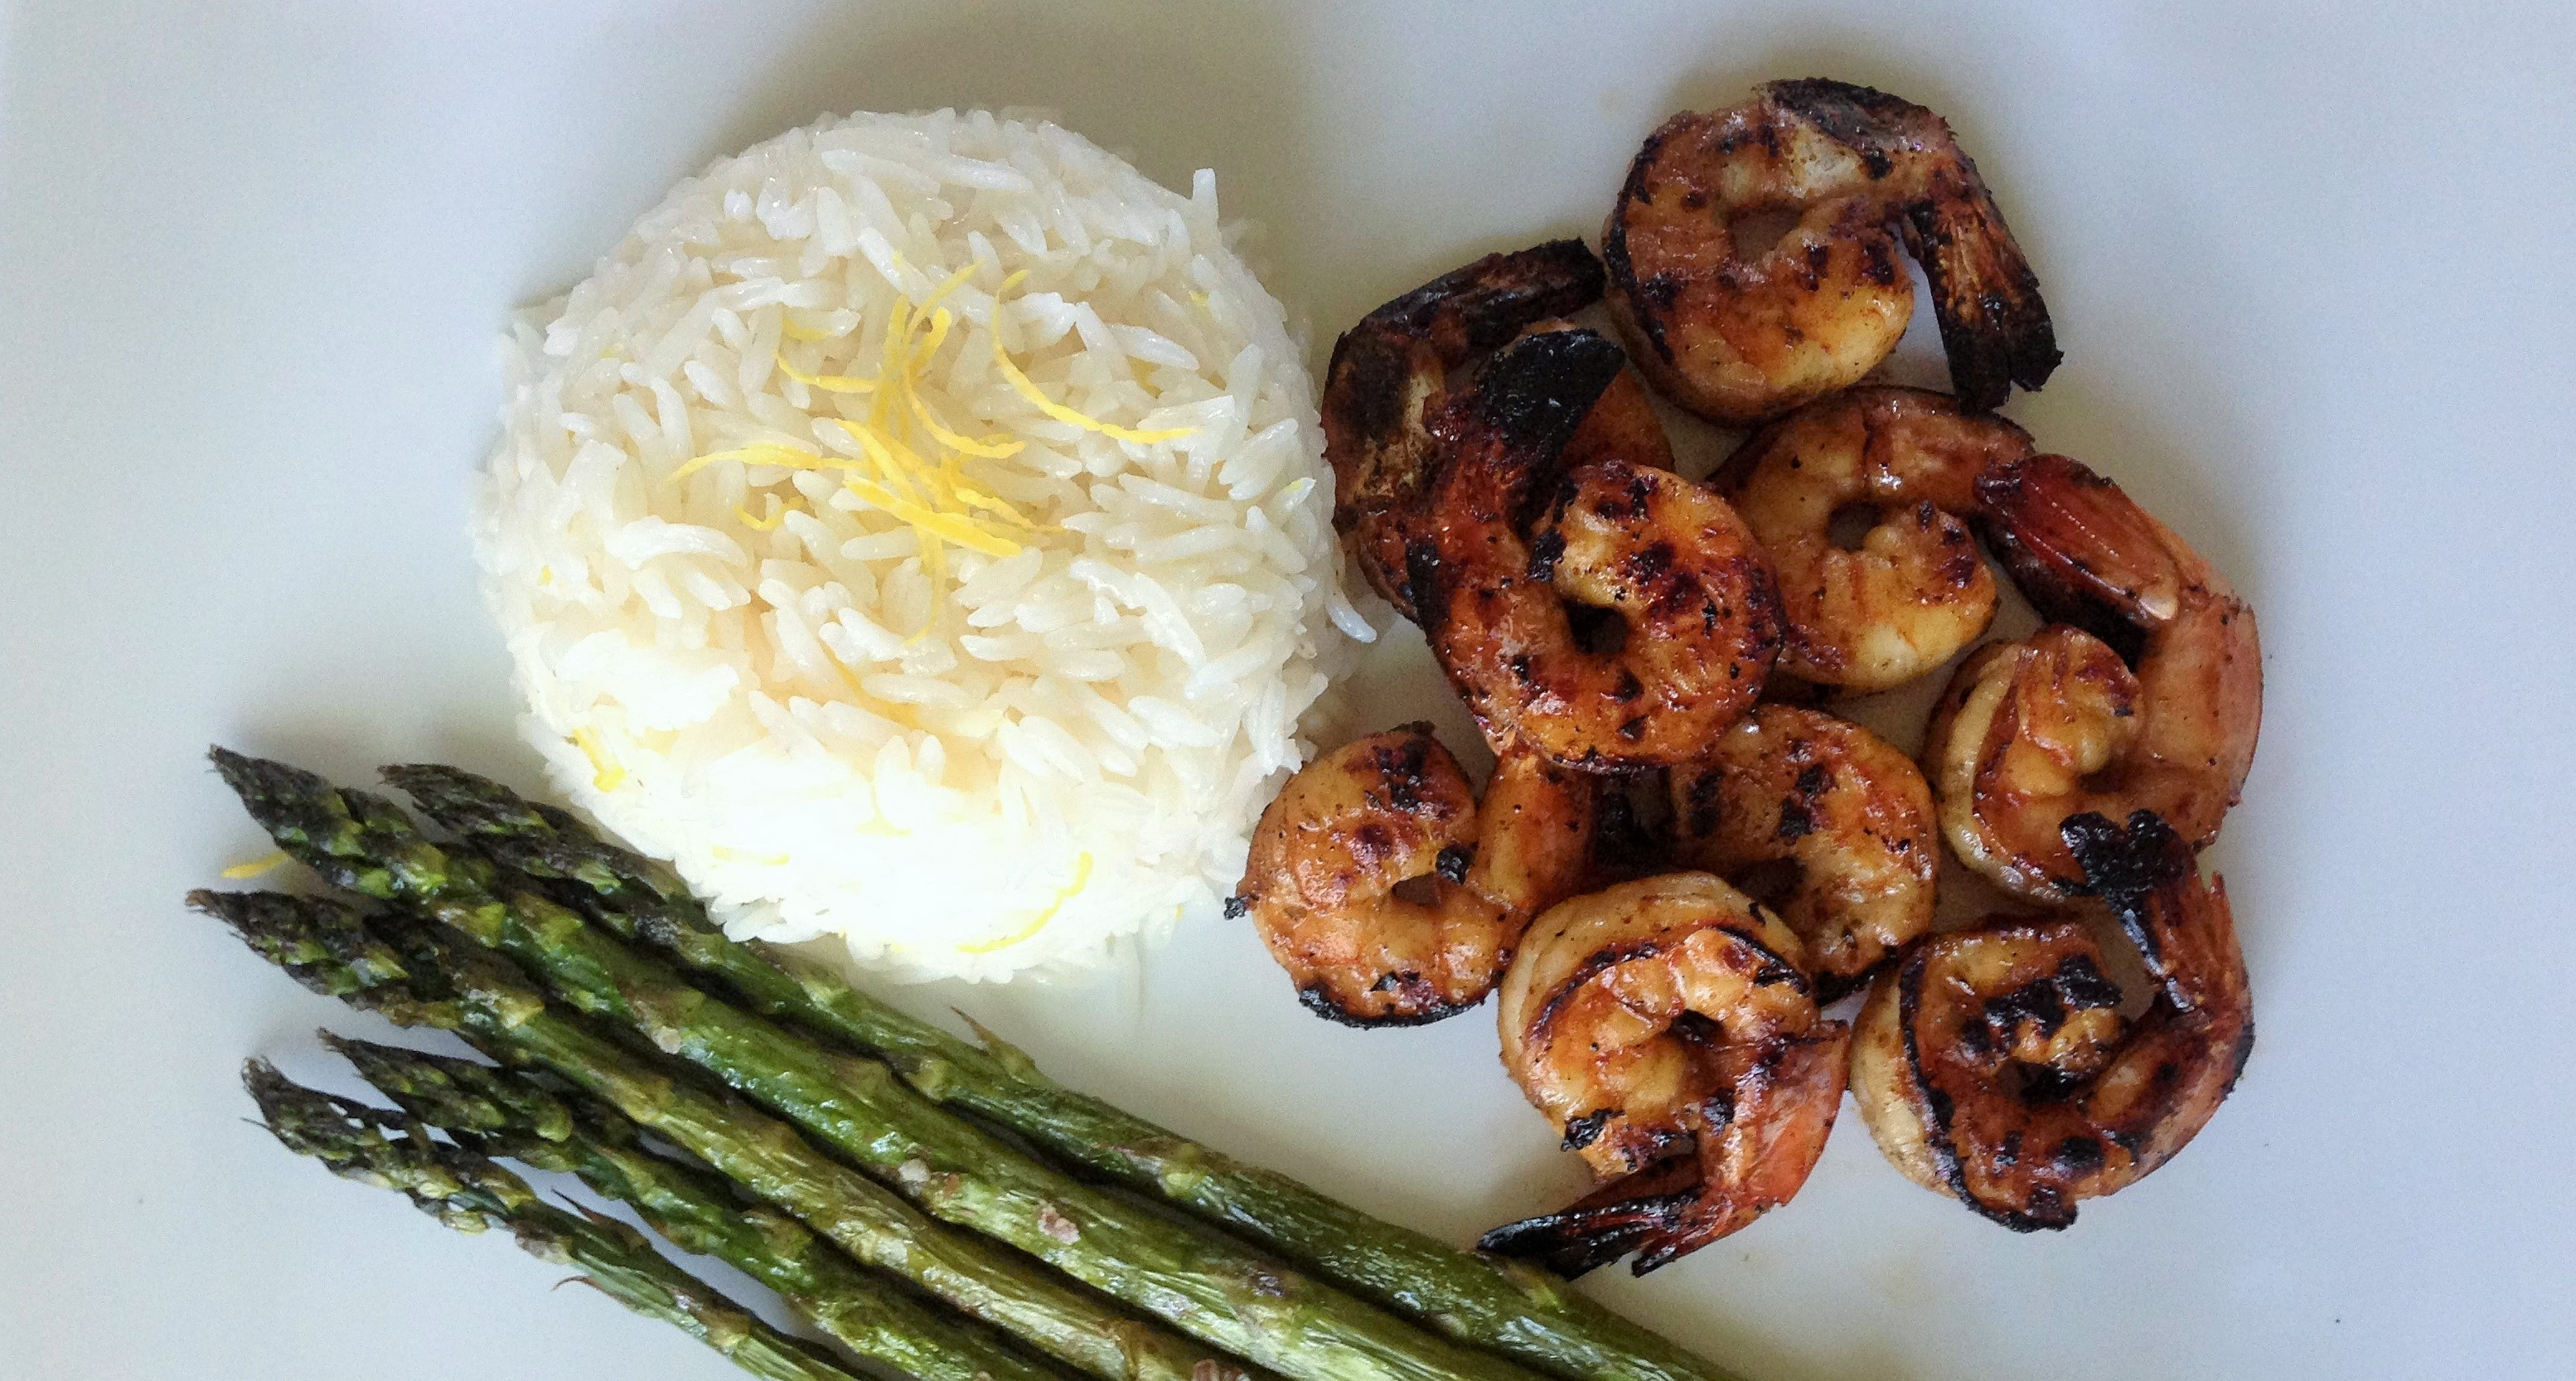 Jamaican Rum Fire-roasted Shrimp with Lemon Basmati Rice